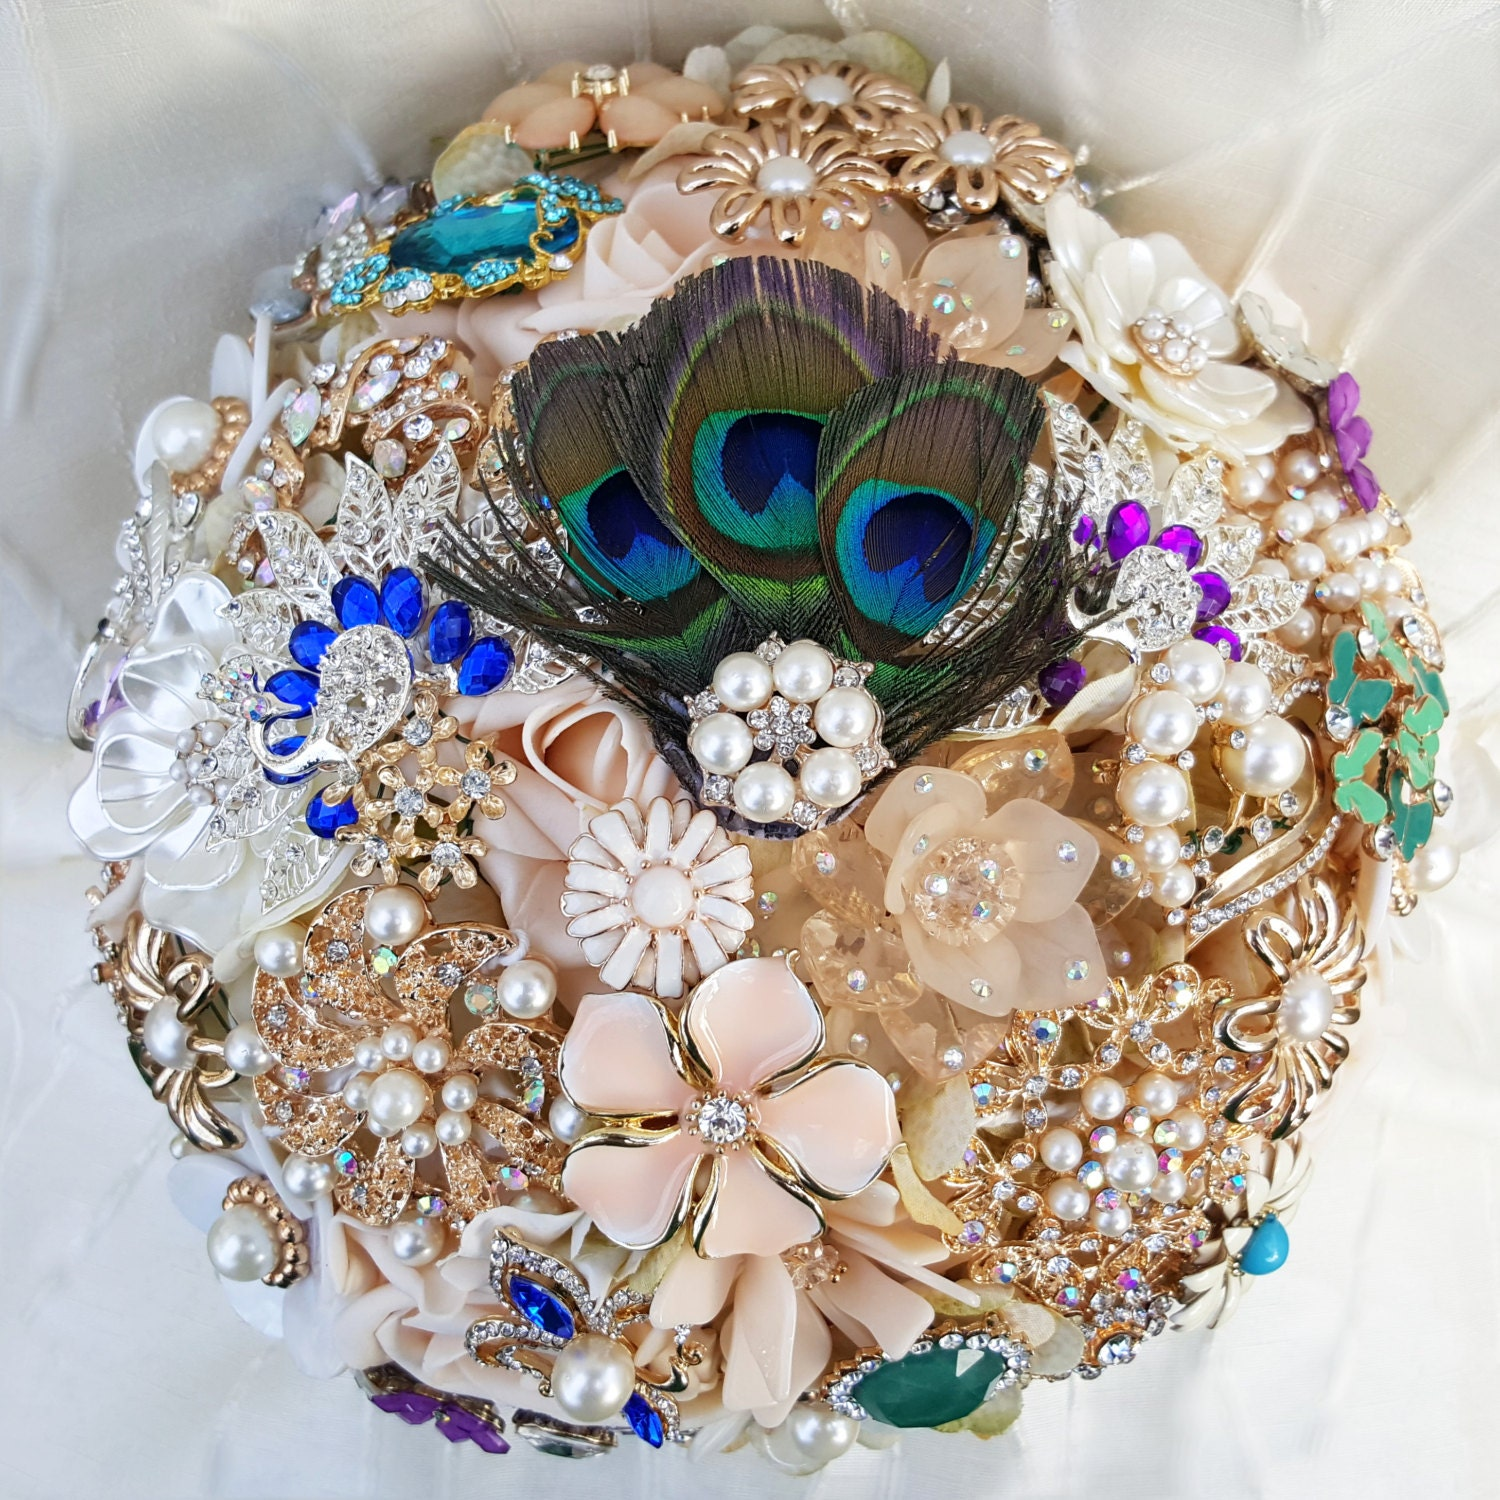 e0b9e18ba FULL PRICE Brooch Bouquet Champagne and Peacock Feathers ...